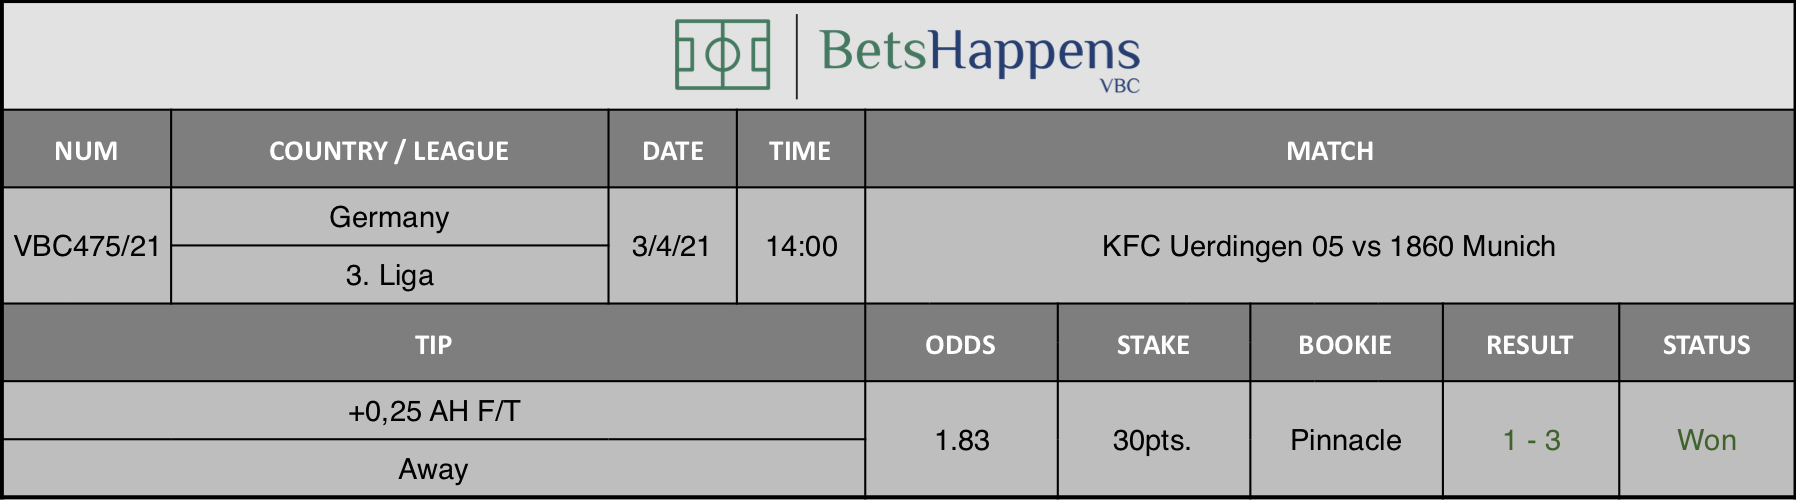 Results of our tip for the KFC Uerdingen 05 vs 1860 Munich match where +0,25 AH F/T  Away is recommended.